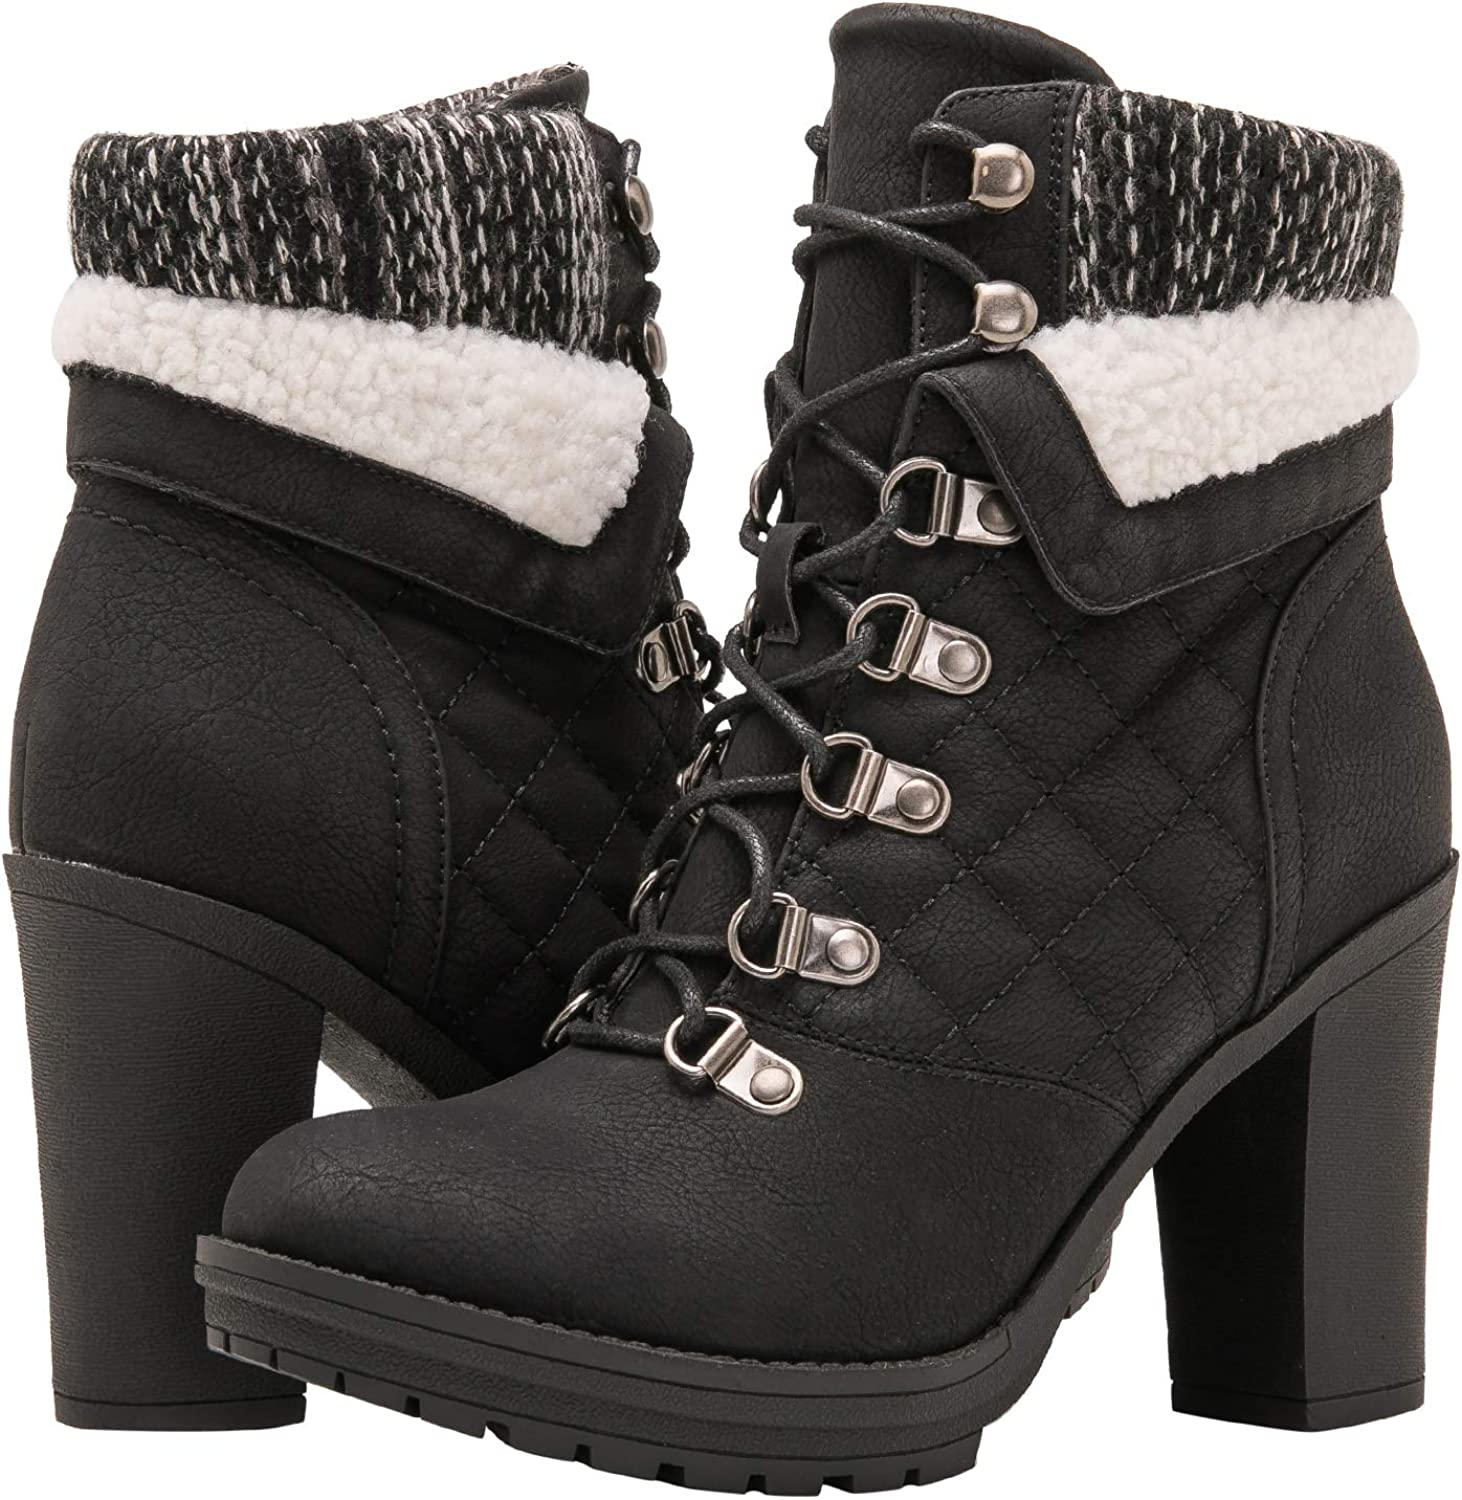 GLOBALWIN Womens Fashion Ankle Boots